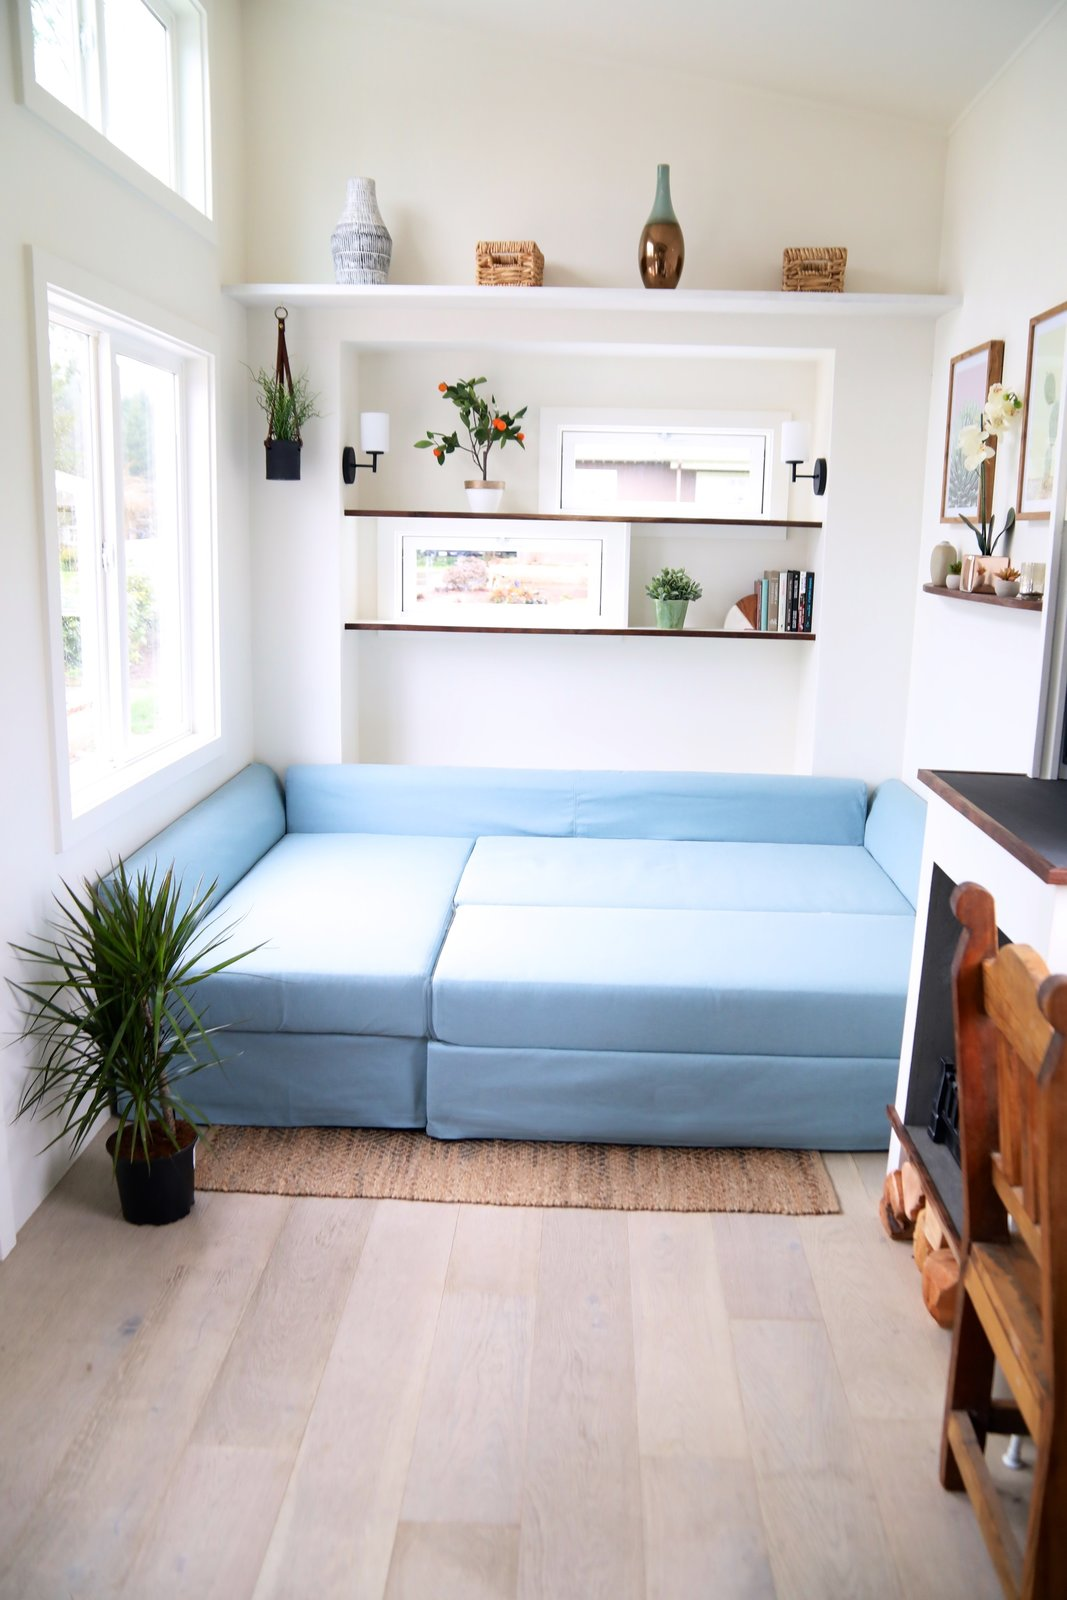 Living Room, Shelves, Wall Lighting, Light Hardwood Floor, Sofa, Rug Floor, and Standard Layout Fireplace A light blue sofa bed was purchased from IKEA.  Photos from This Tiny Trailer Home Boasts Soothing Beach Vibes